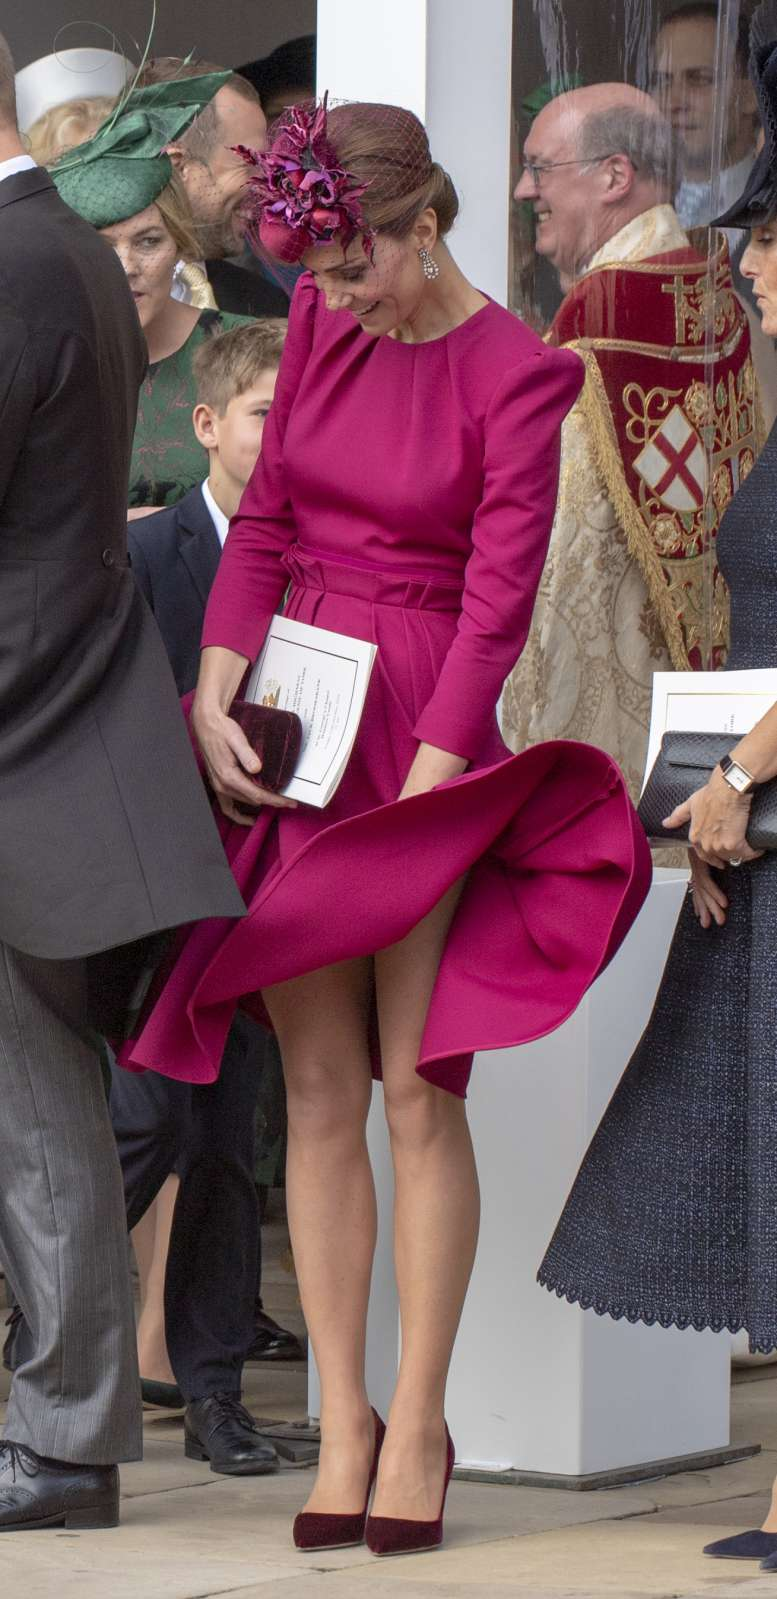 Hidden Message Behind Kate Middleton's Wardrobe: Why The Duchess Copies The Queen's StyleHidden Message Behind Kate Middleton's Wardrobe: Why The Duchess Copies The Queen's StyleHidden Message Behind Kate Middleton's Wardrobe: Why The Duchess Copies The Queen's StyleHidden Message Behind Kate Middleton's Wardrobe: Why The Duchess Copies The Queen's StyleHidden Message Behind Kate Middleton's Wardrobe: Why The Duchess Copies The Queen's StyleHidden Message Behind Kate Middleton's Wardrobe: Why The Duchess Copies The Queen's Stylekate middleton